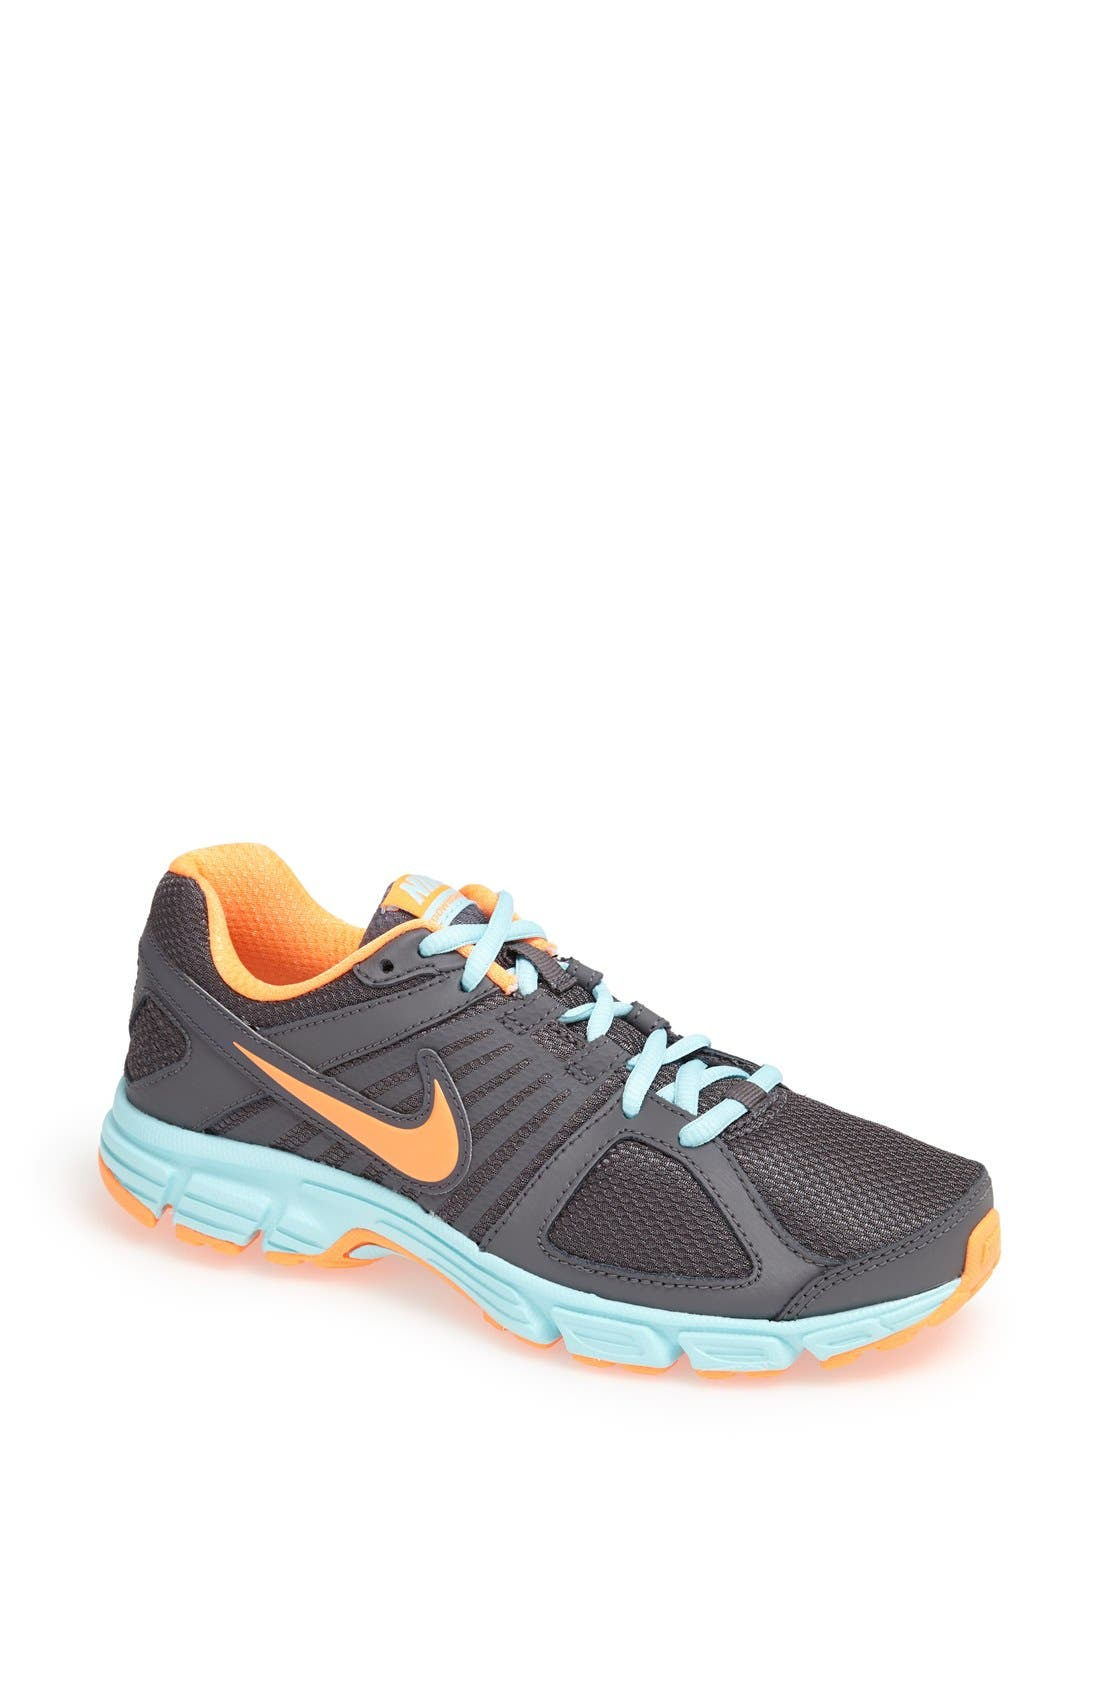 'Downshifter 5' Running Shoe, Main, color, 022